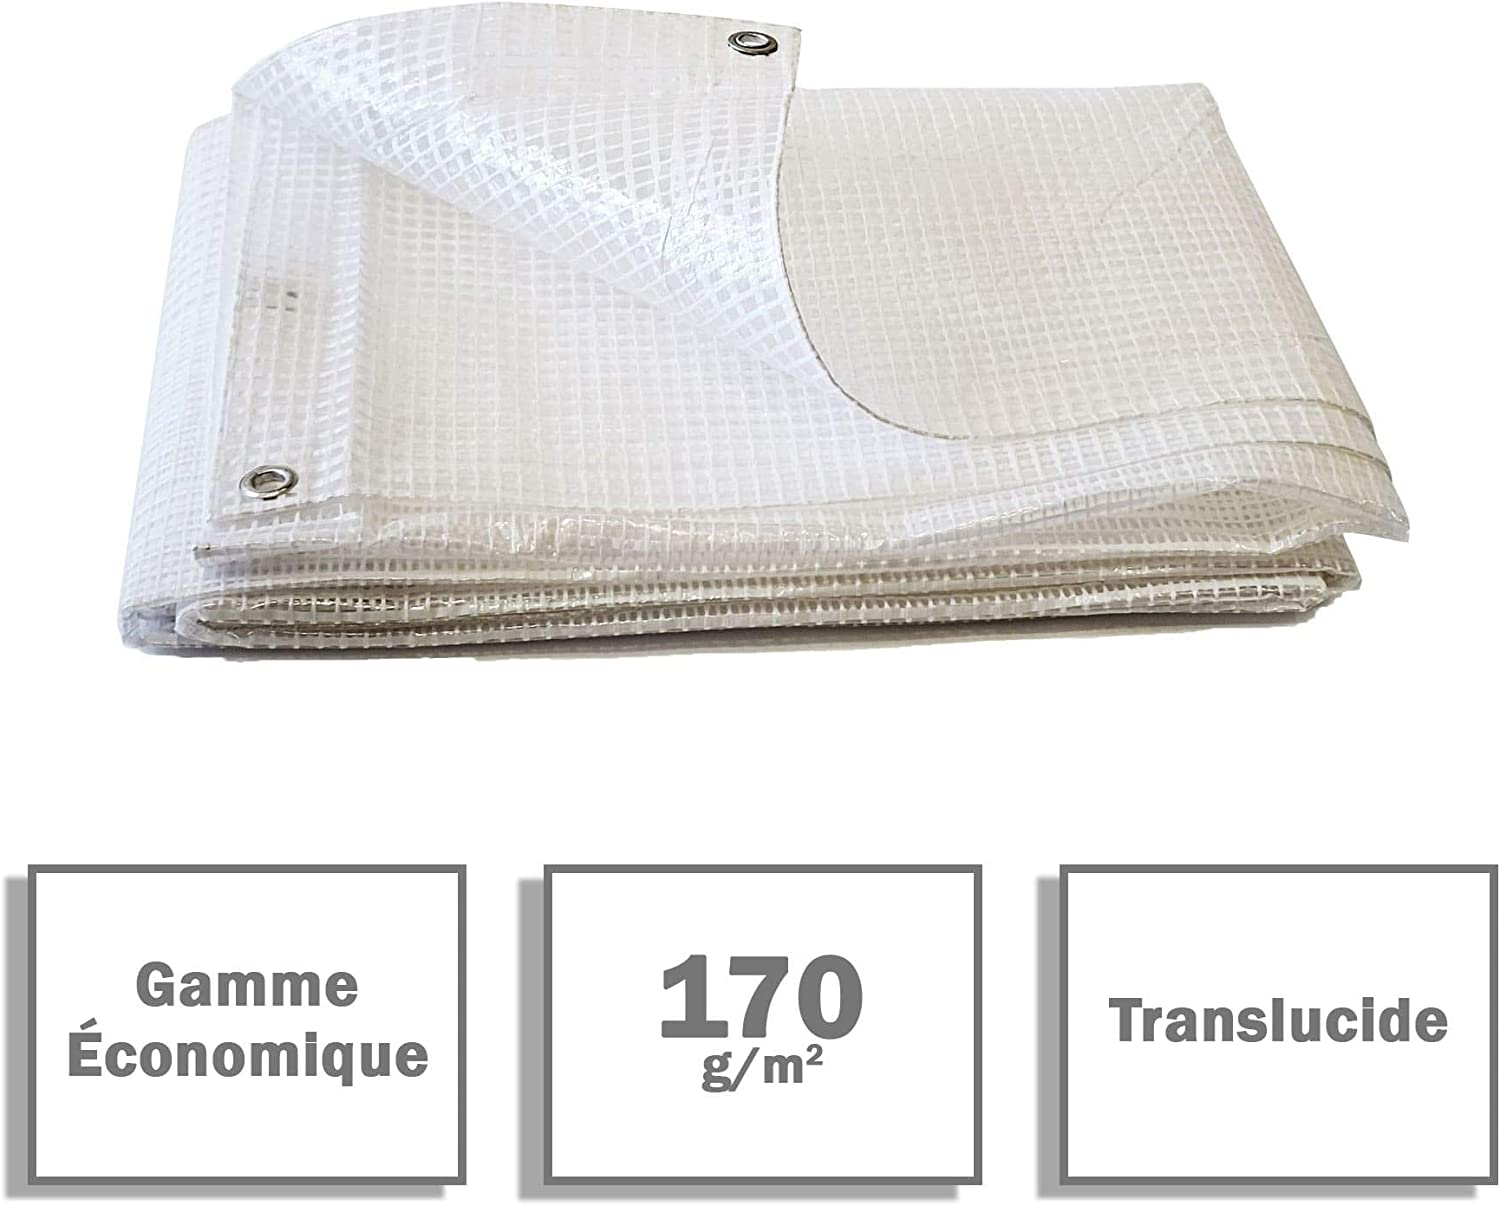 /lona transparente/ /4/x 3/m/ Lona madera 170/g//m/²/ /bache a madera /b/âches impermeables/